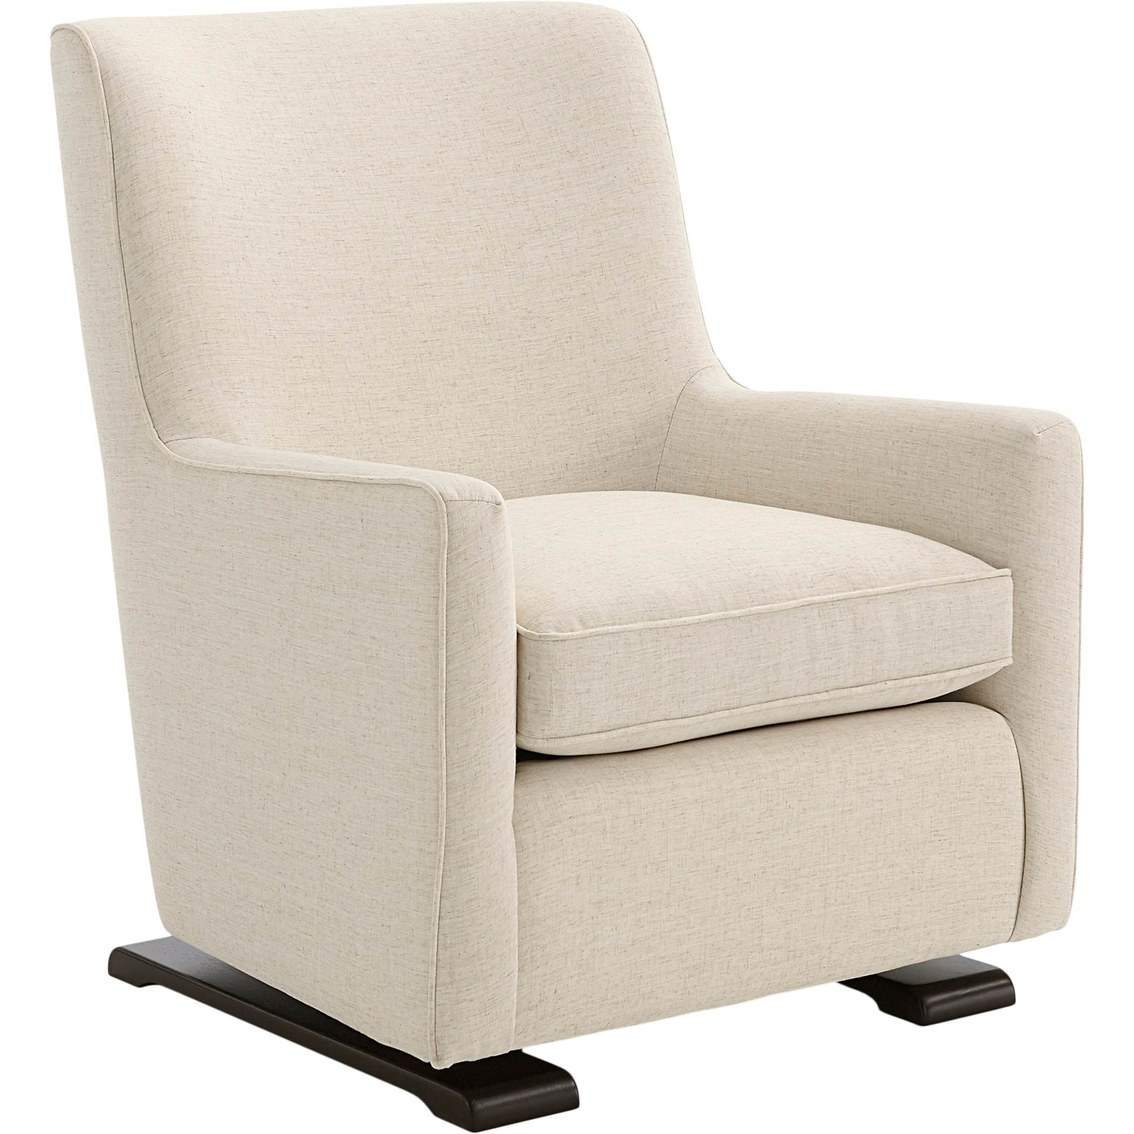 Best Home Coral Swivel Glider Chairs Recliners Home